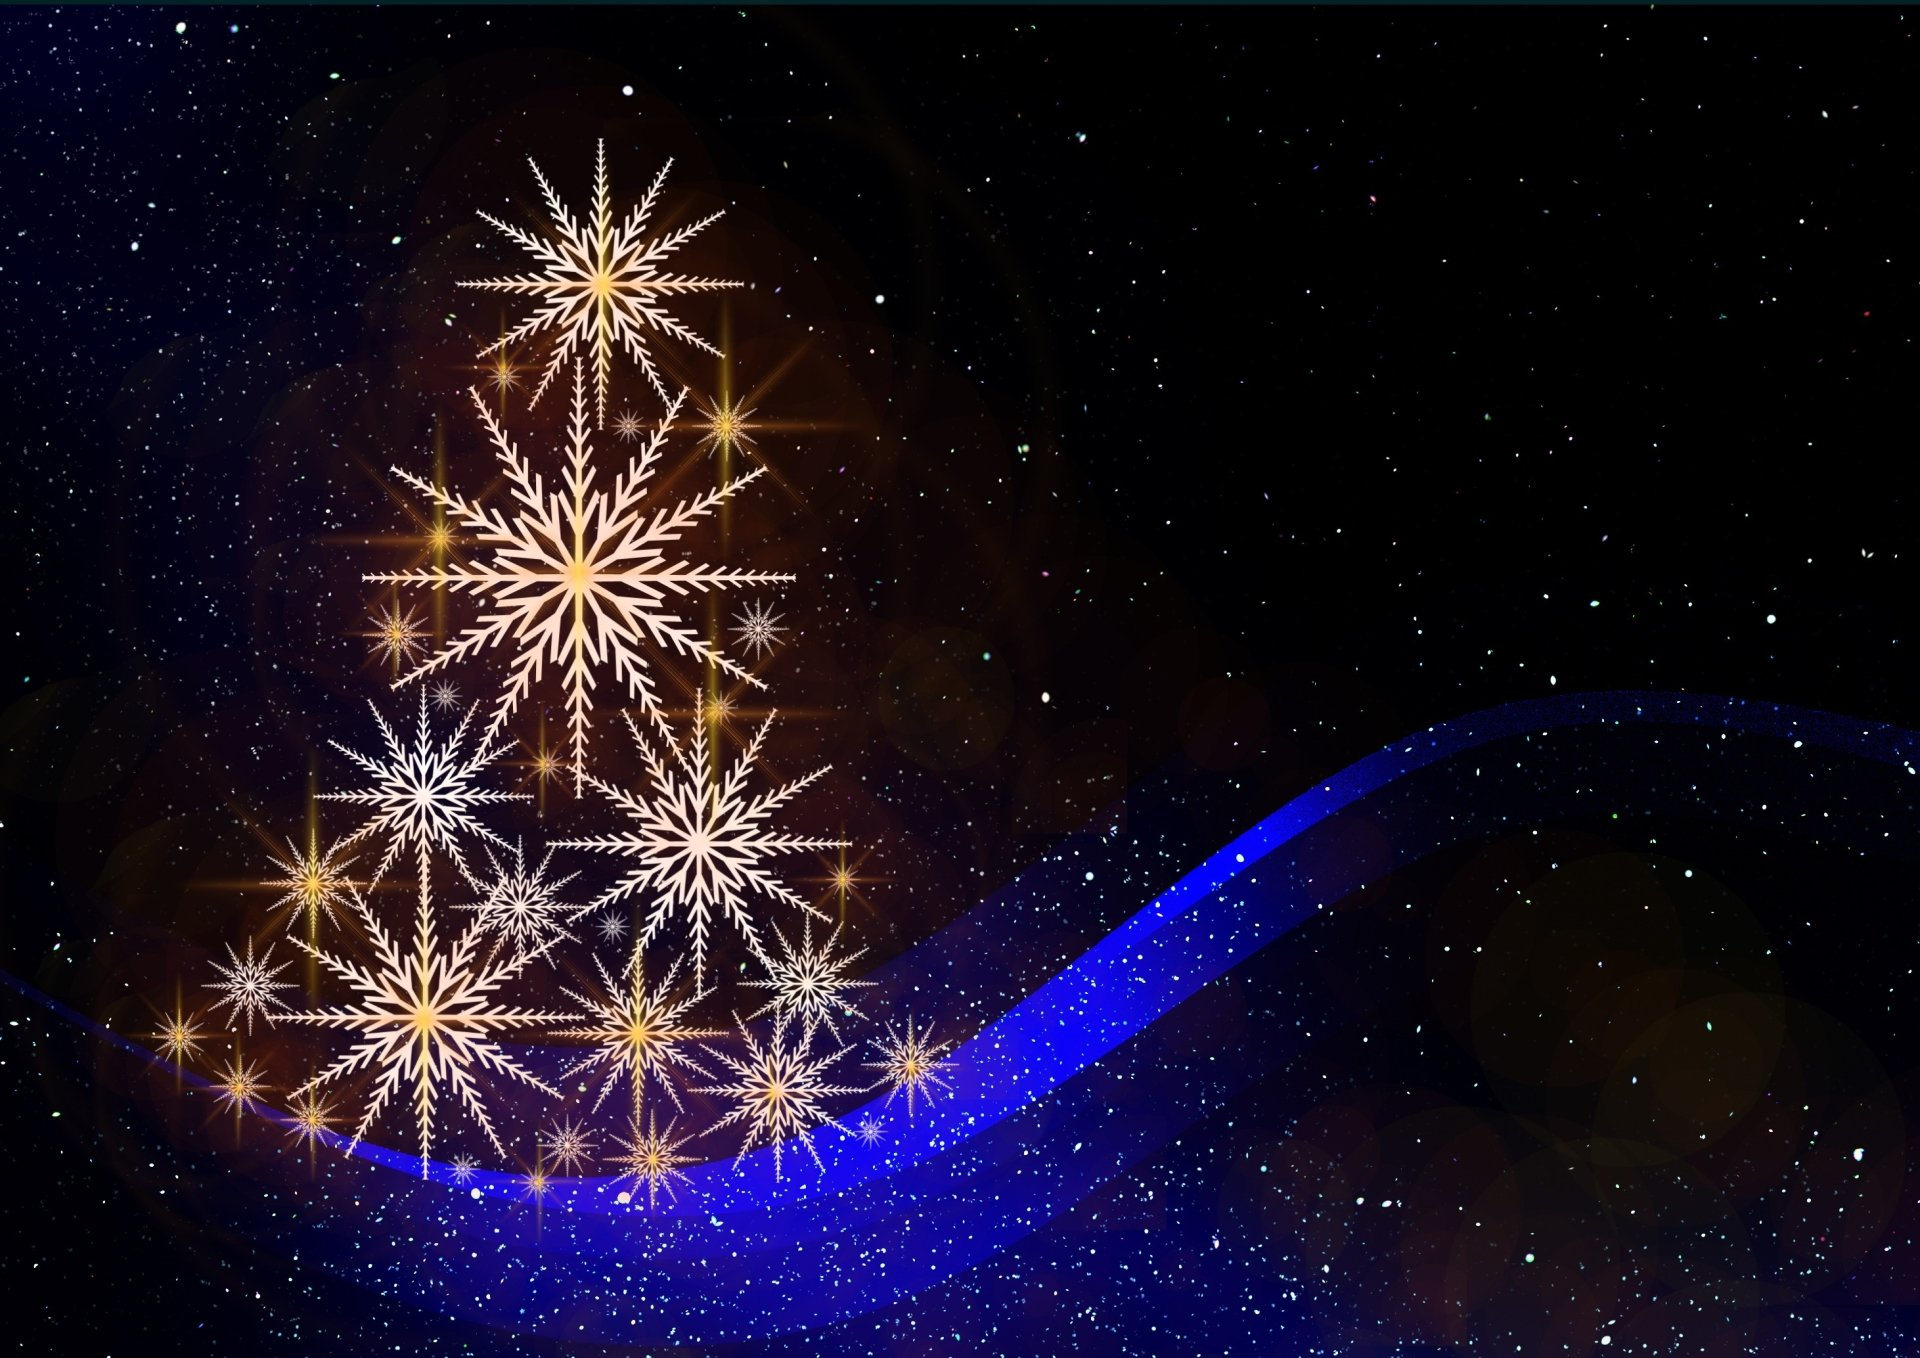 Holiday - Christmas  Artistic Holiday Snowflake Christmas Tree Wallpaper